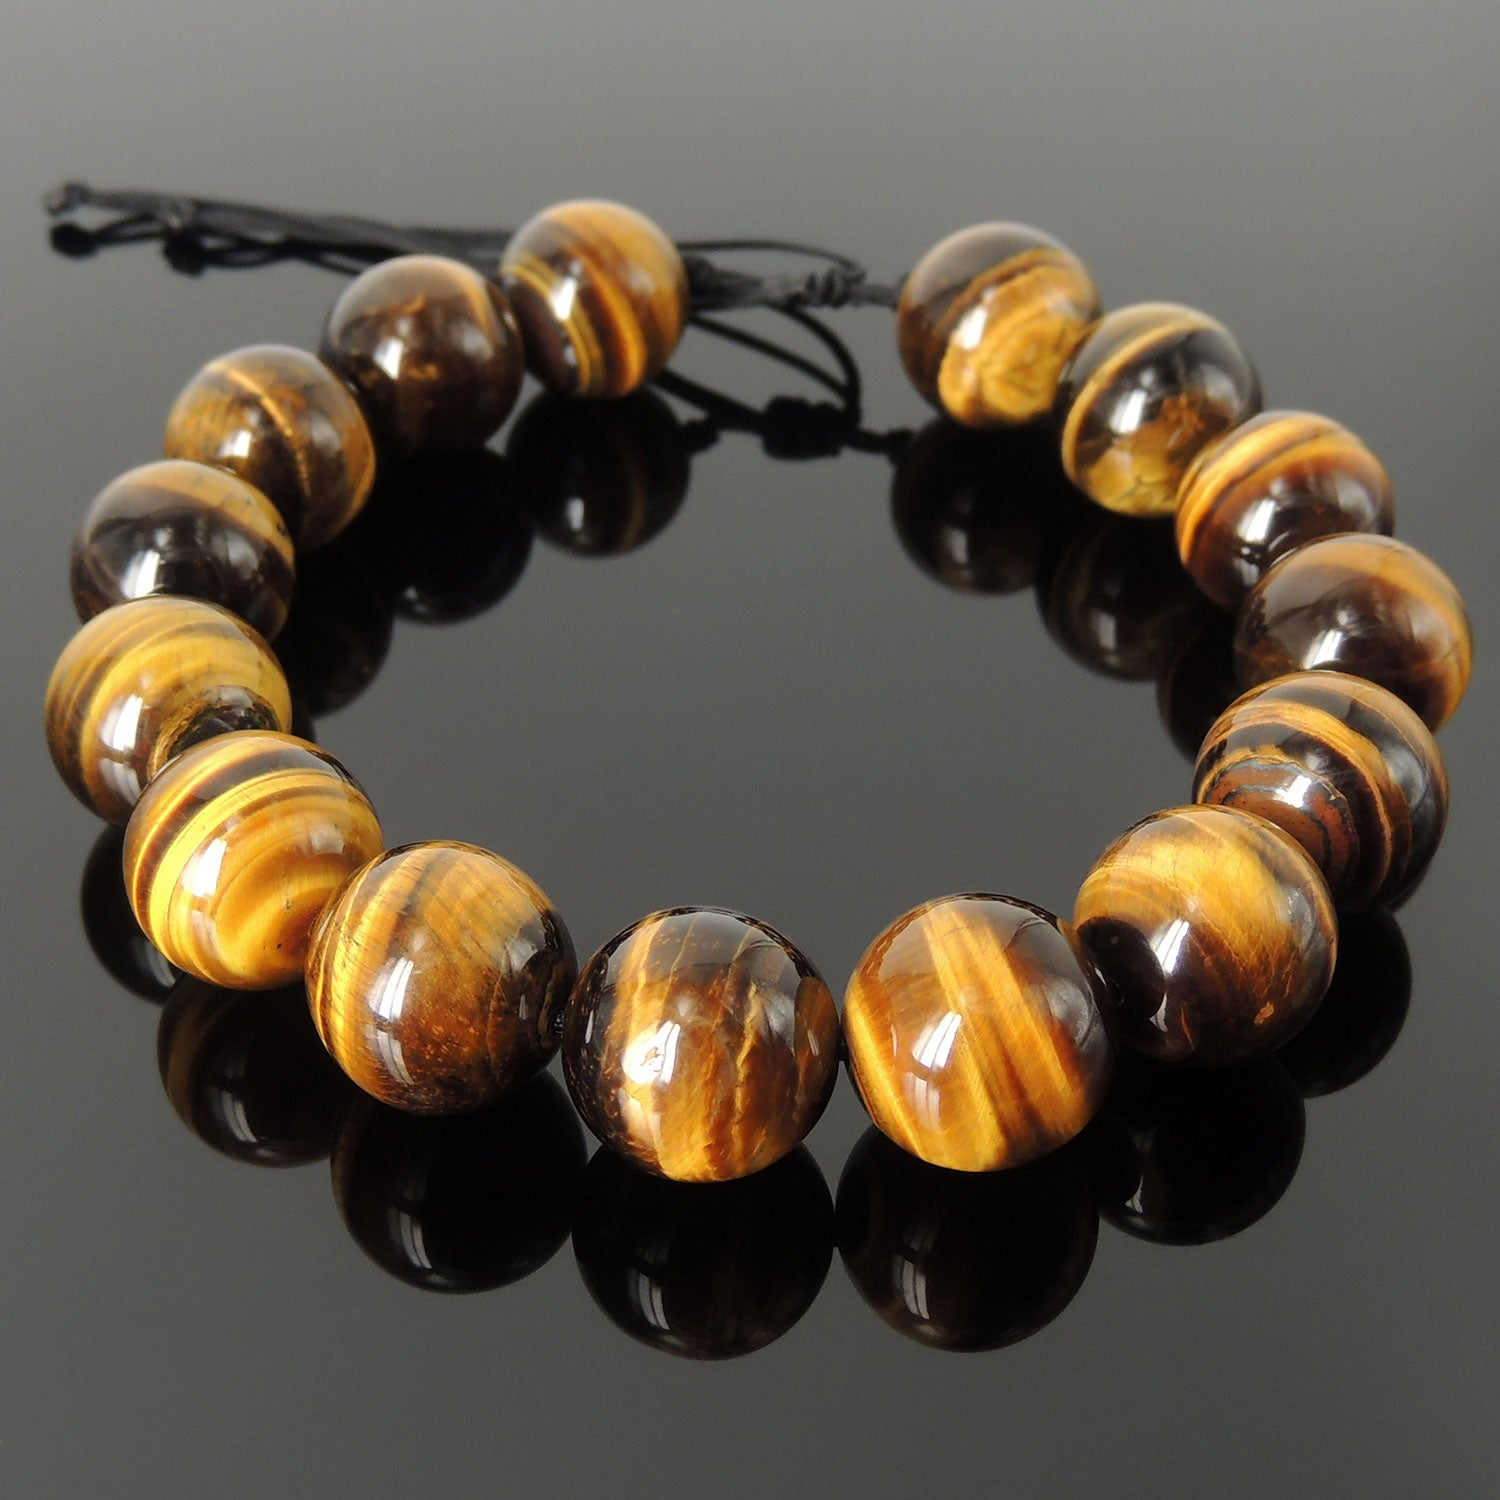 JB-0249A Teens and Girls Ankle Bracelet Fashion Jewelry for Women MGD Small Anklets Dark Brown Tiger Eye Color Bead and Brass Bell Anklet Beautiful Handmade Brass Flower Anklet